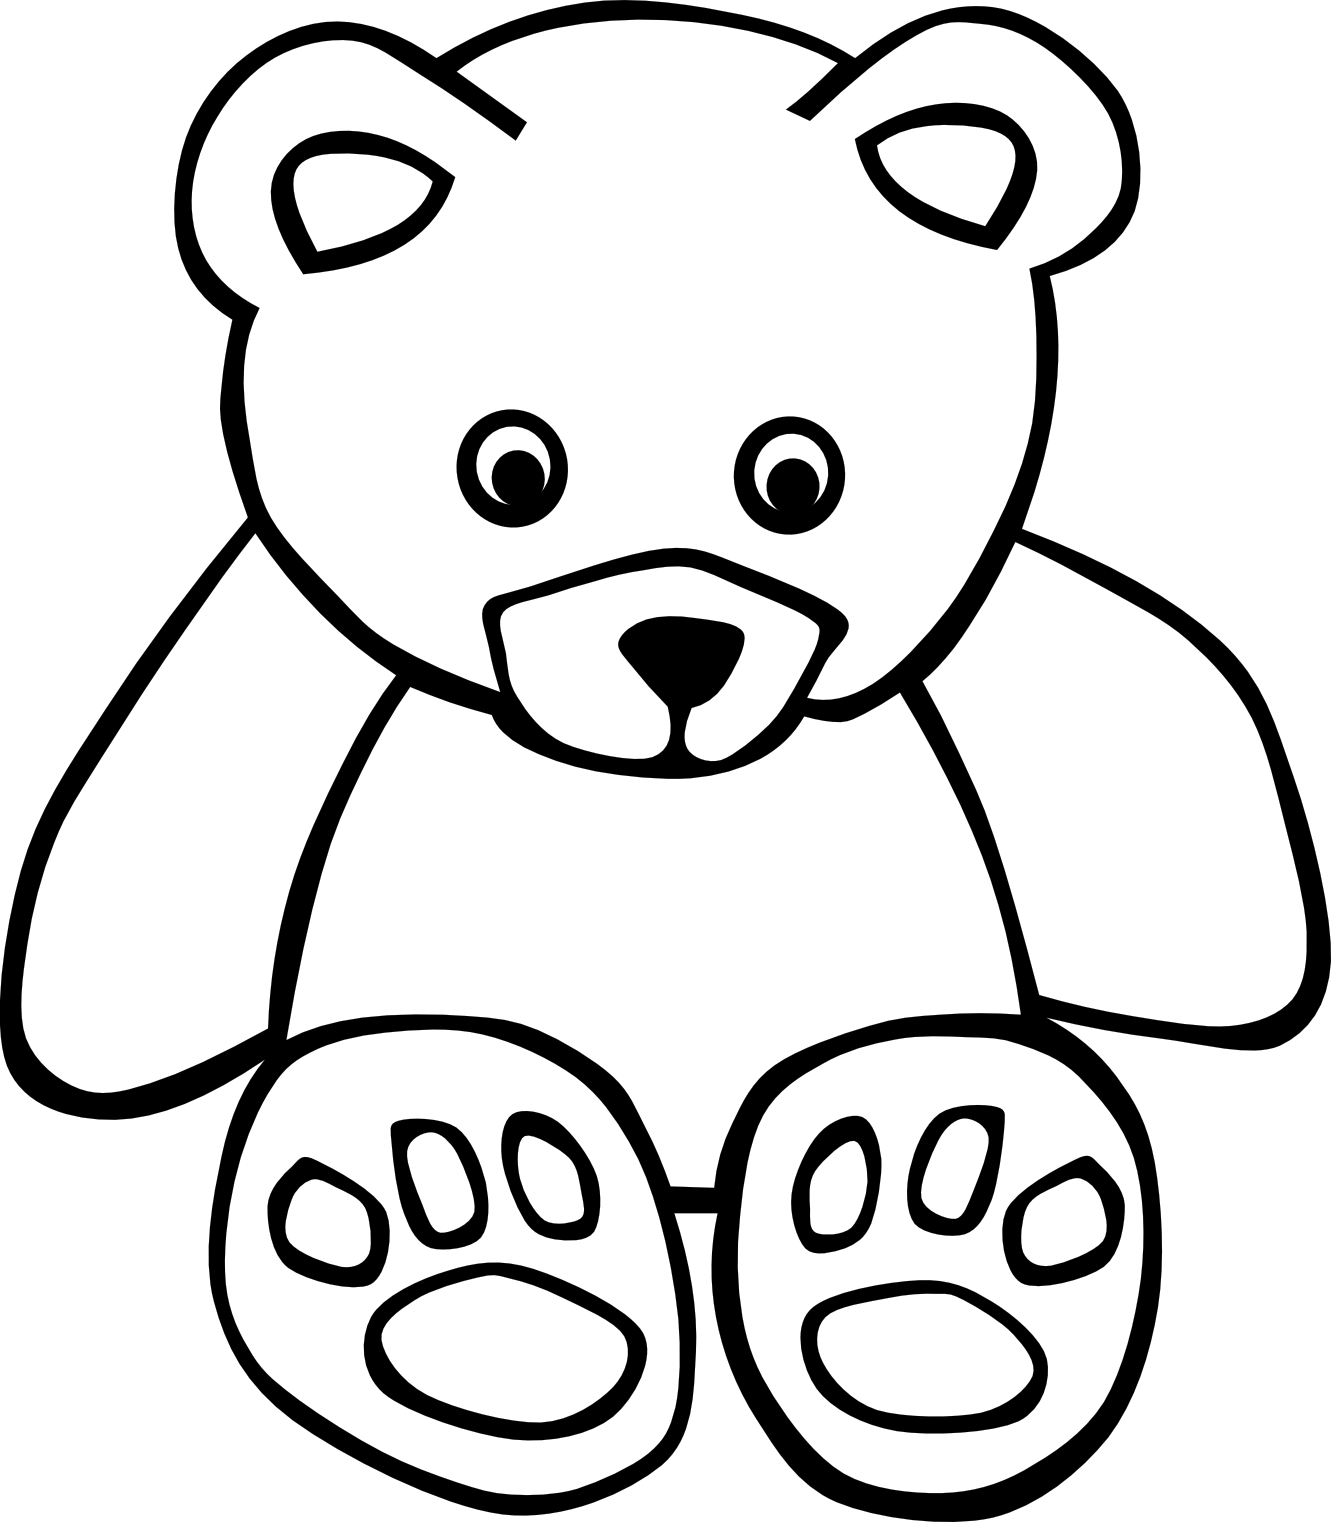 Computer clip art black and white.  clipart panda free